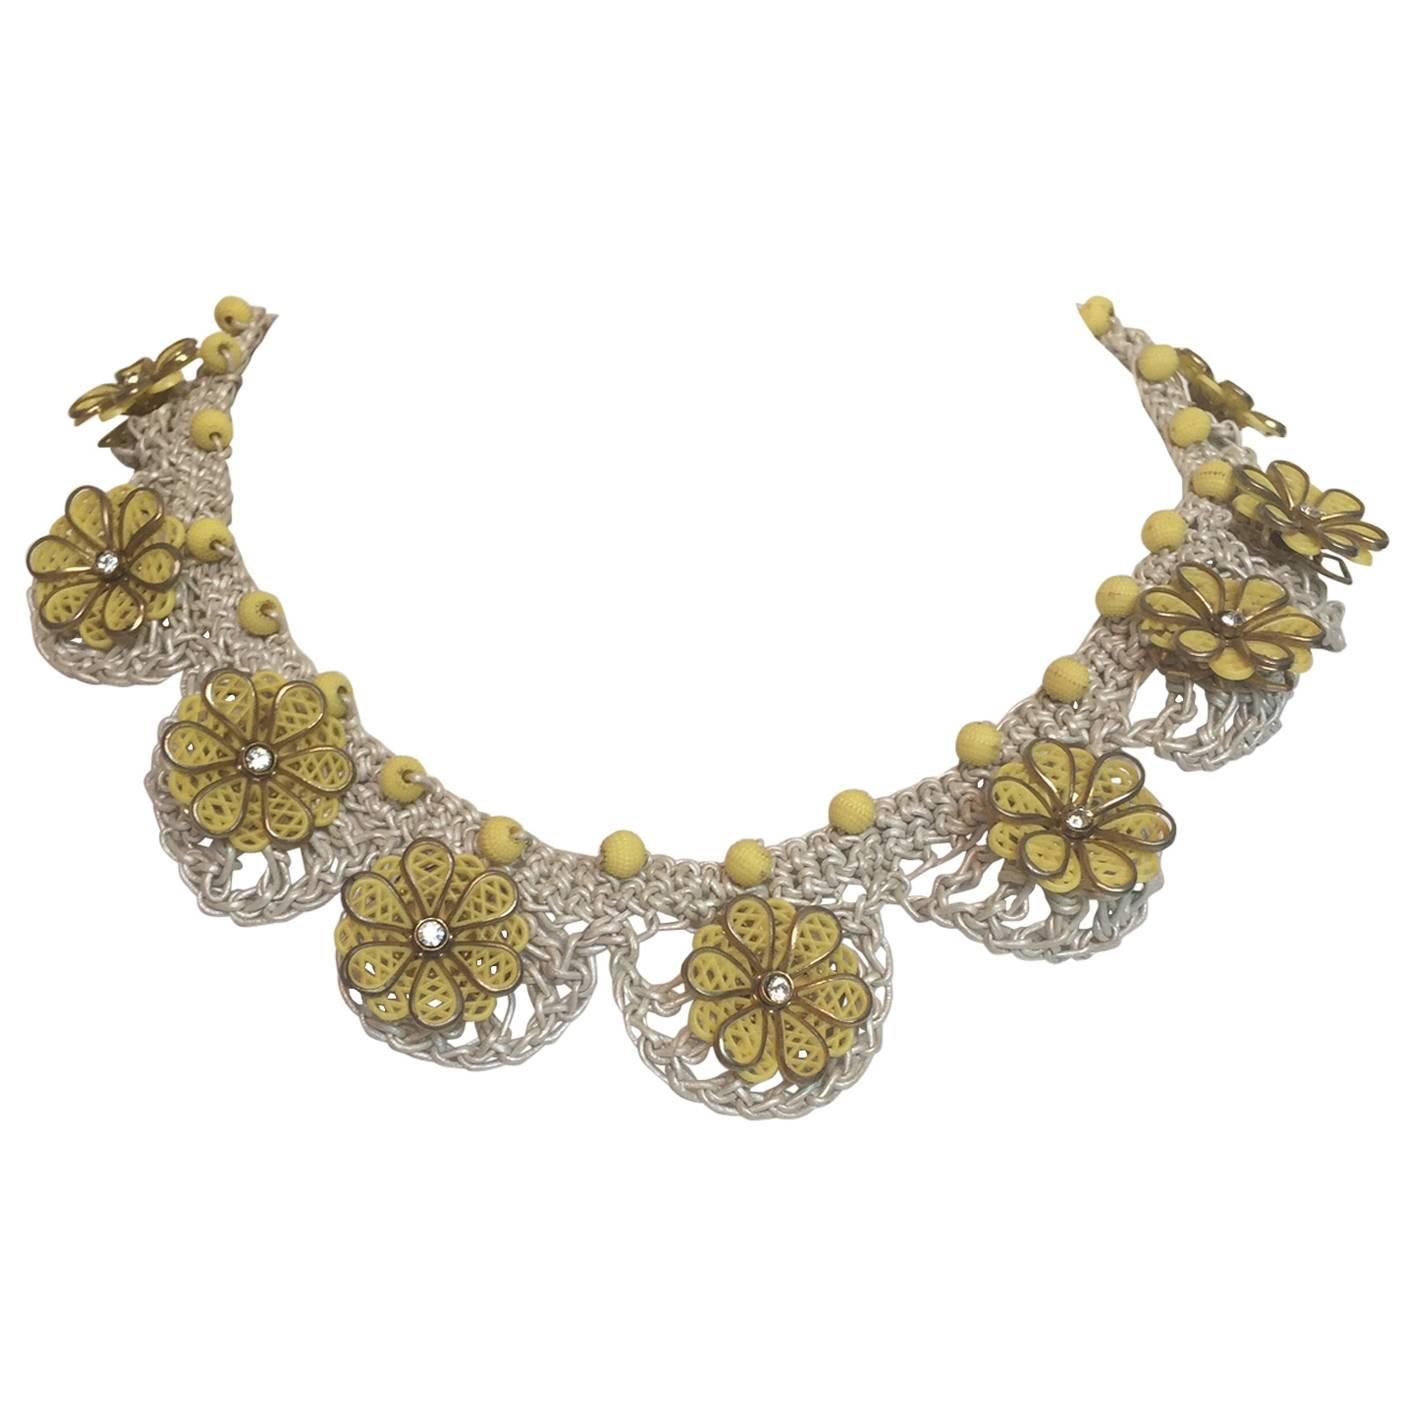 dating costume jewellery The ultimate guide to dating chanel jewellery share  some of the highest quality costume jewellery in the world, utilising the skills of some of the most famous .